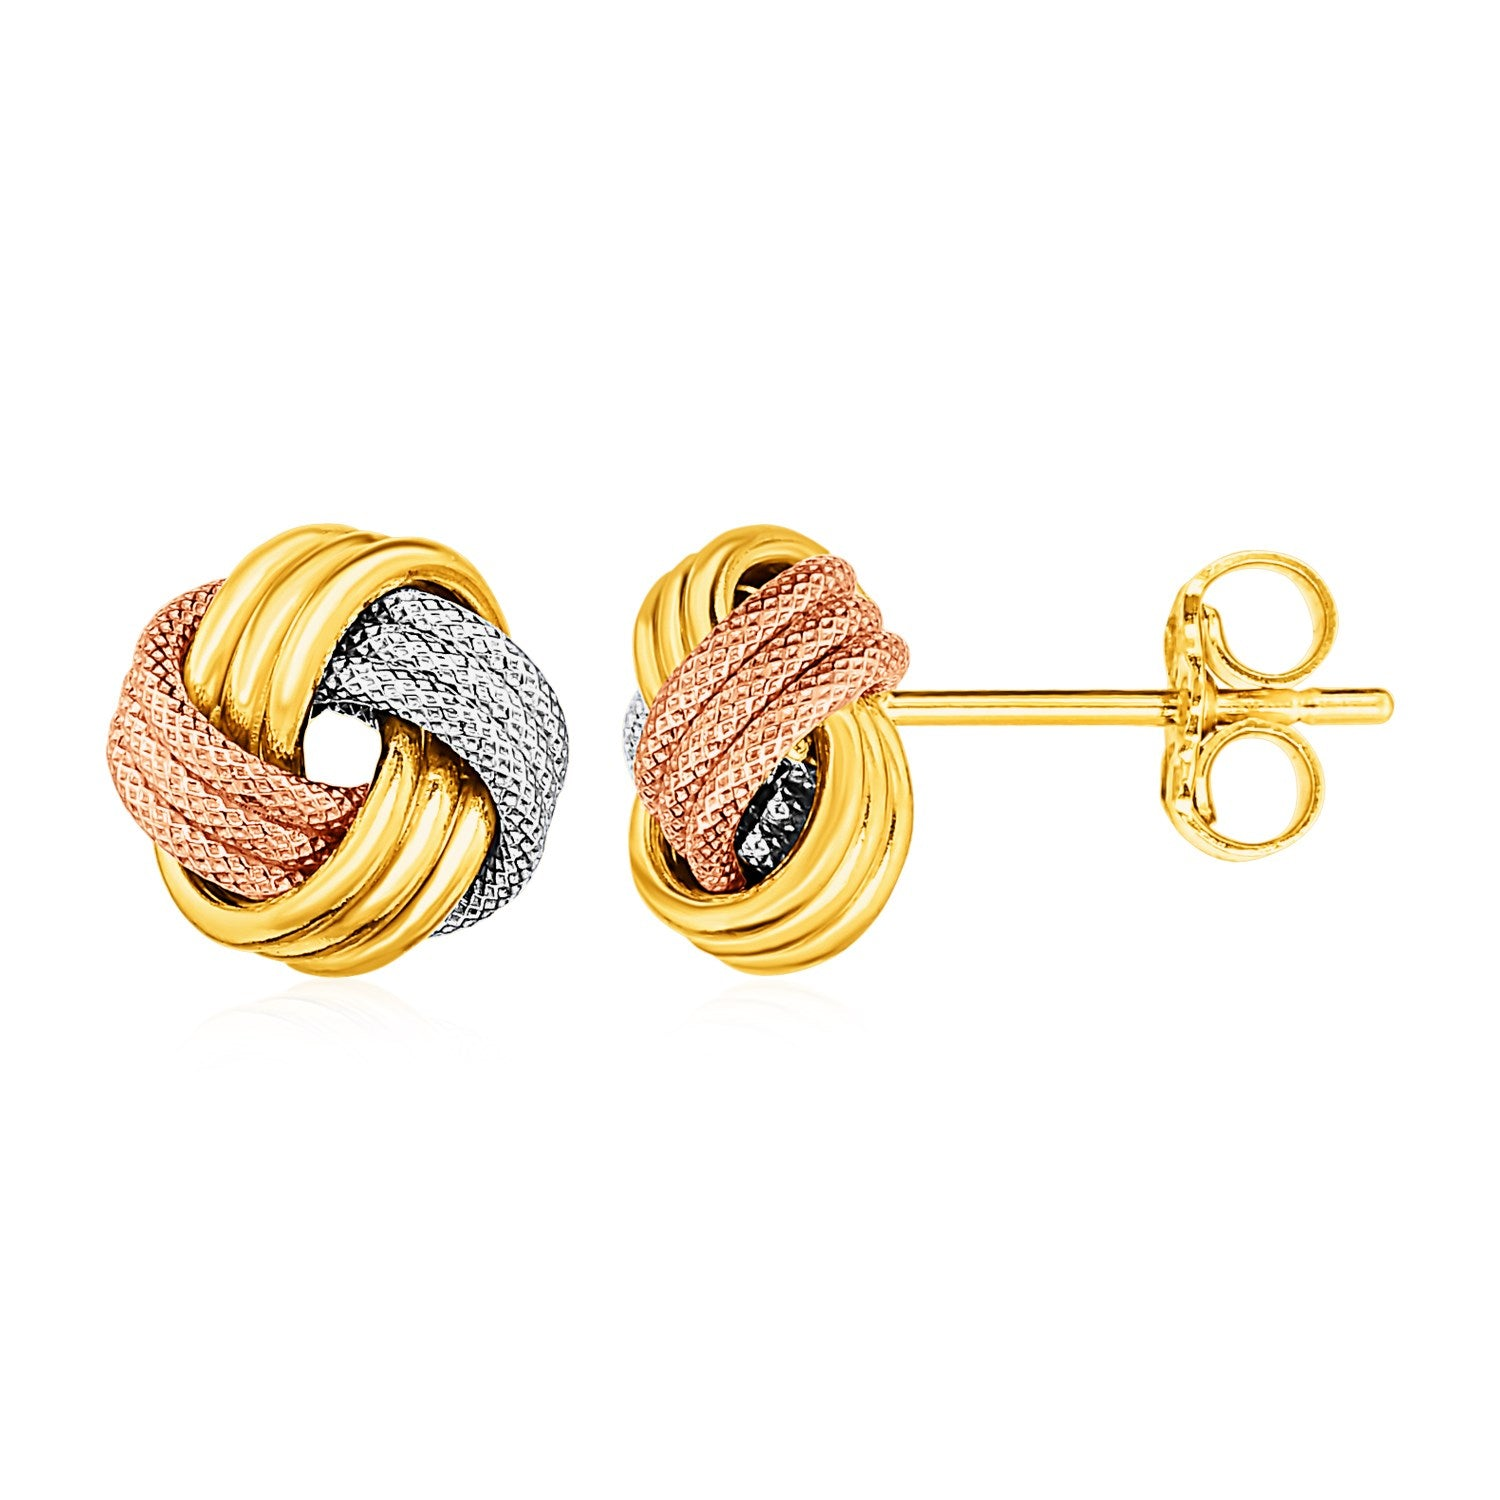 89f452f24 Love Knot Post Earrings in 14k Tri Color Gold - Unity BAMN